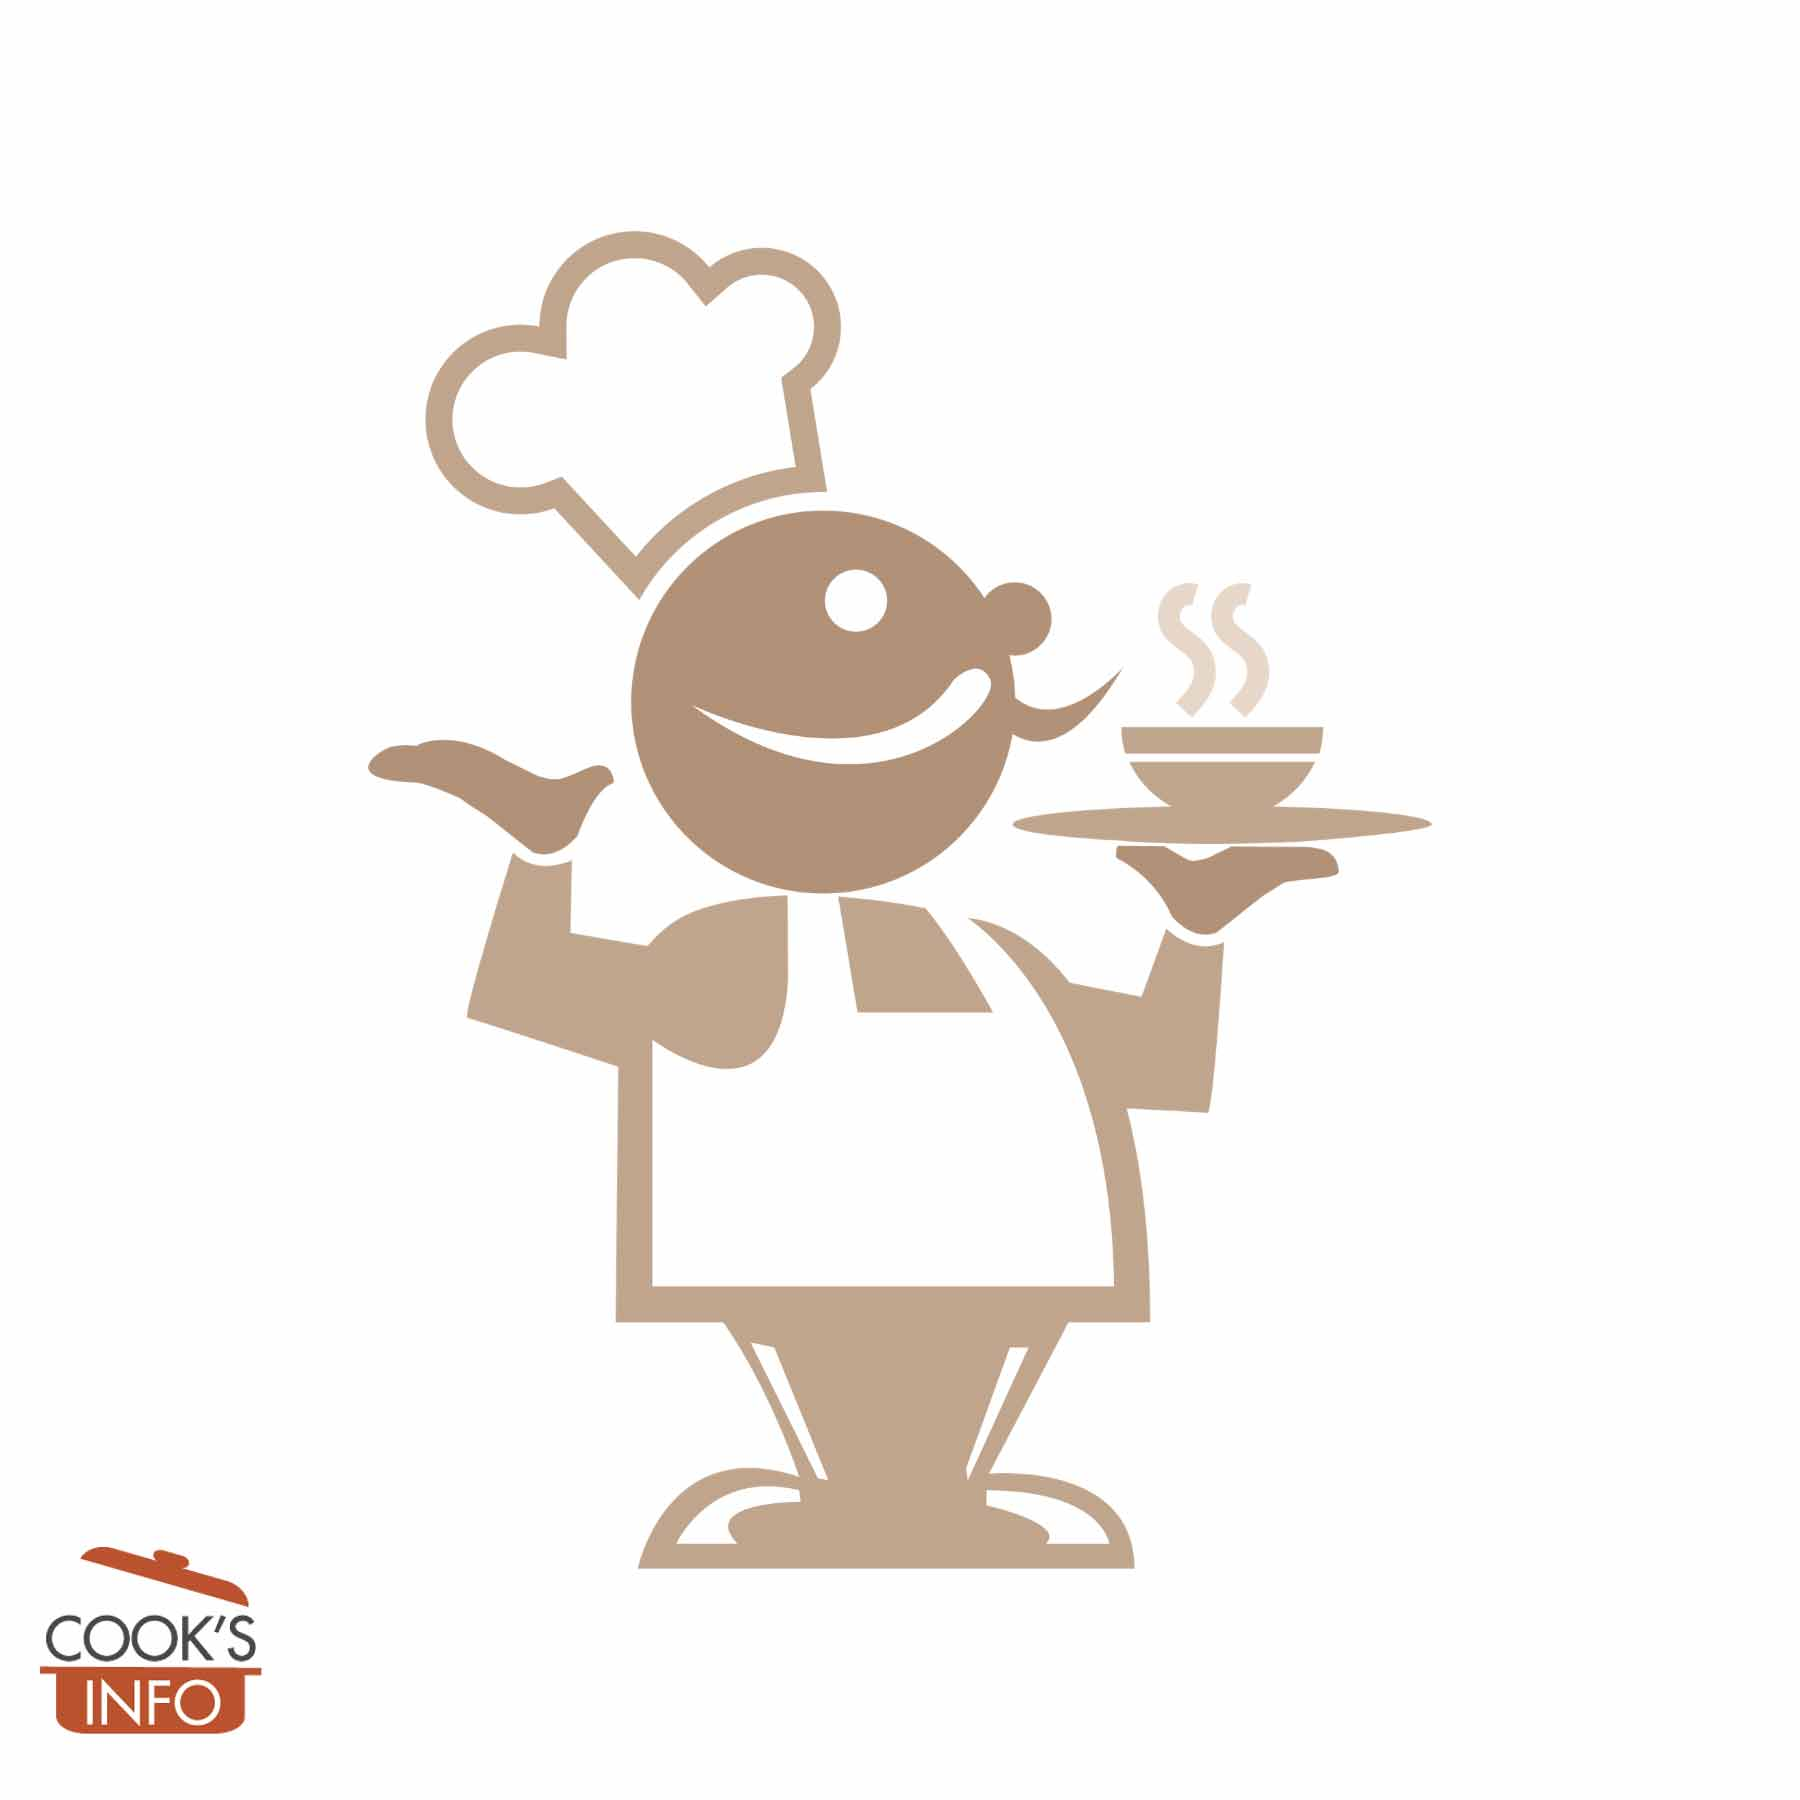 Image of a chef holding a hot bowl